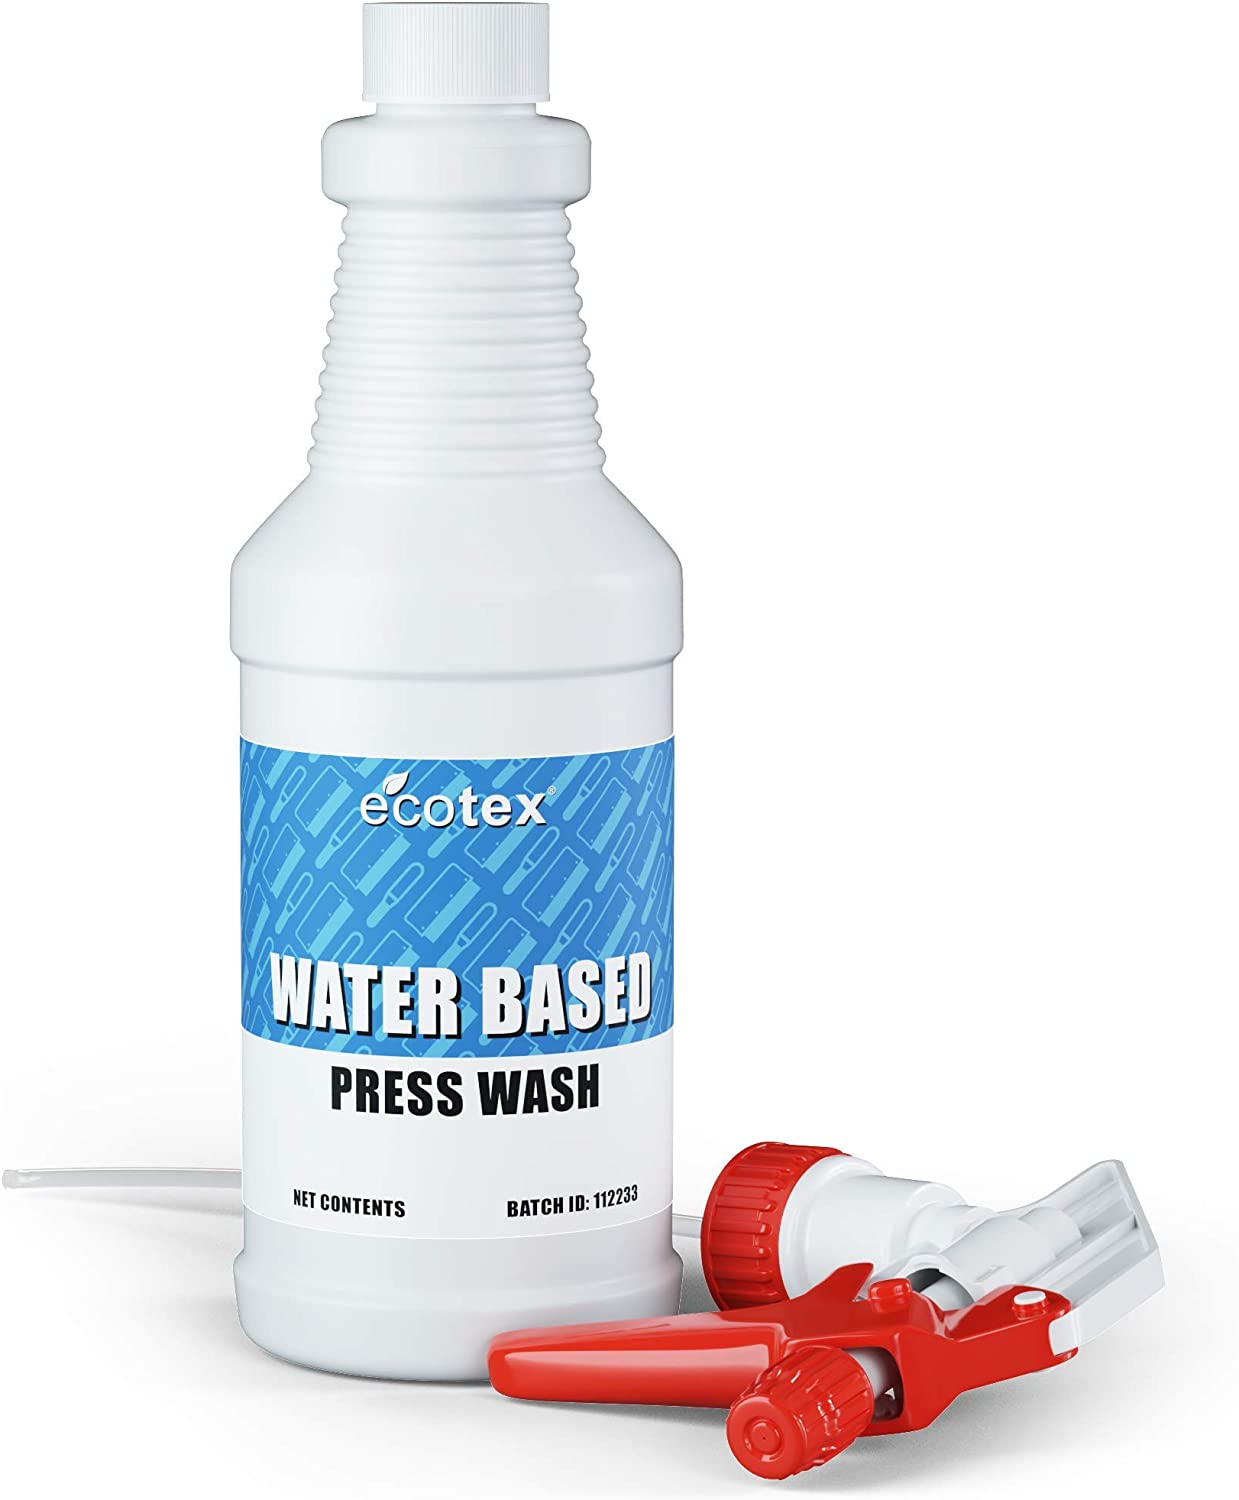 Ecotex Water Based Press Wash Eco Sink in On Pr 2021new shipping free shipping Shipping included Friendly